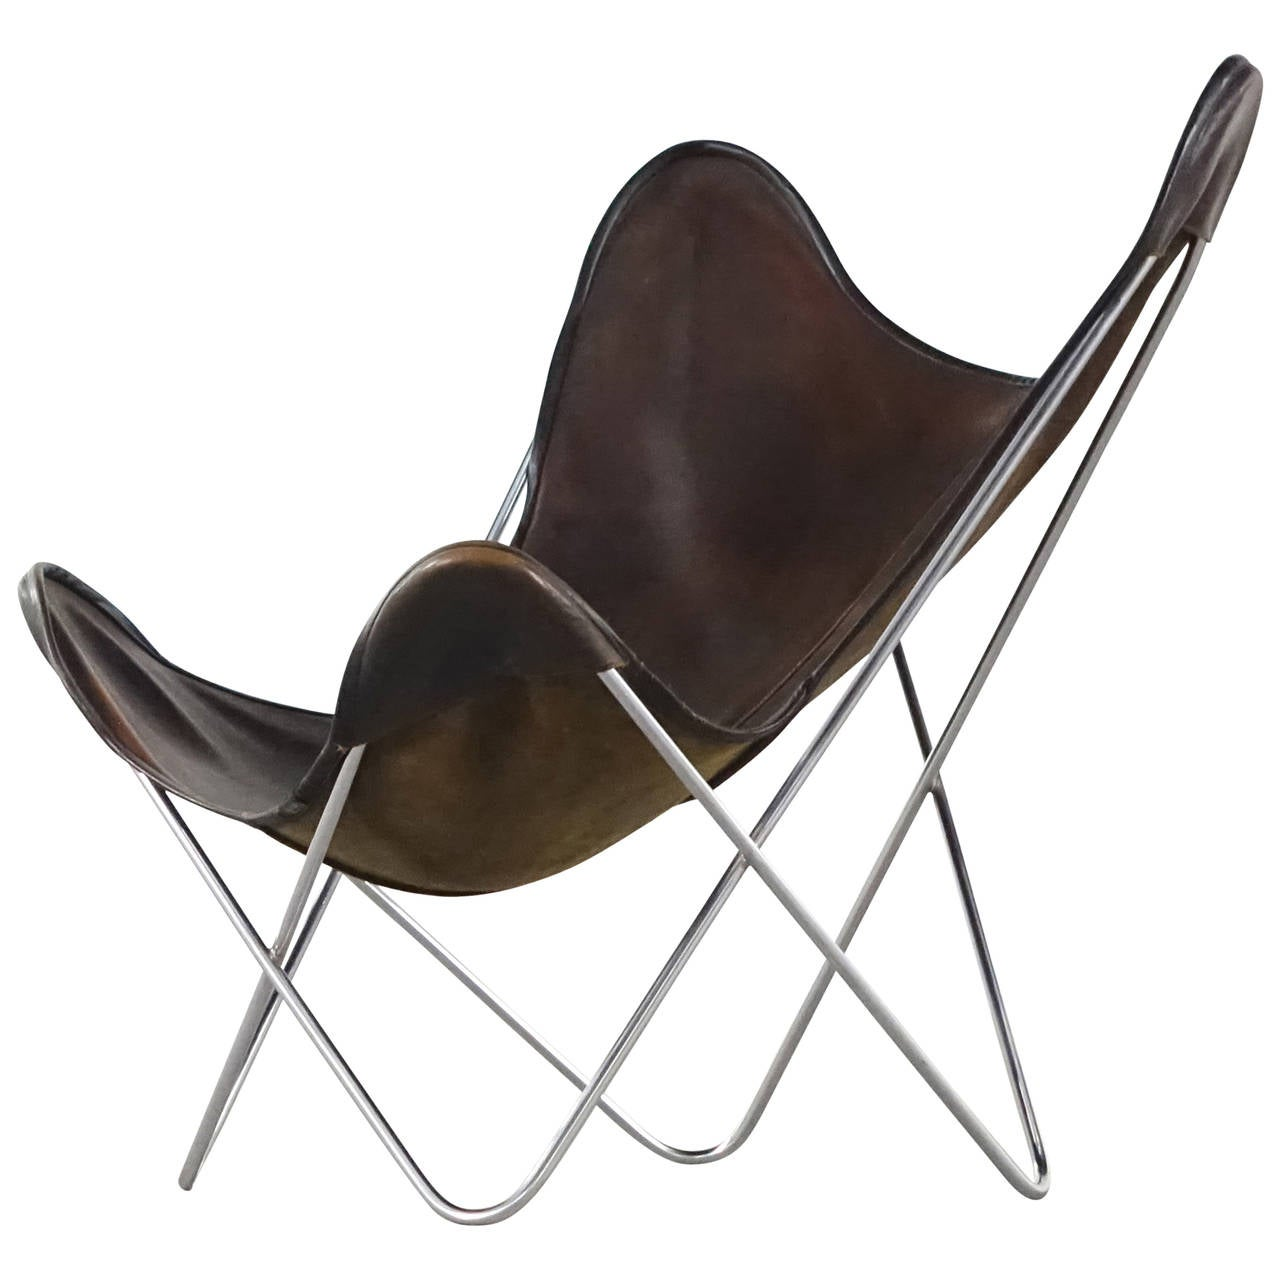 jorge ferrari hardoy butterfly sling chair for knoll international 1960 at 1stdibs. Black Bedroom Furniture Sets. Home Design Ideas